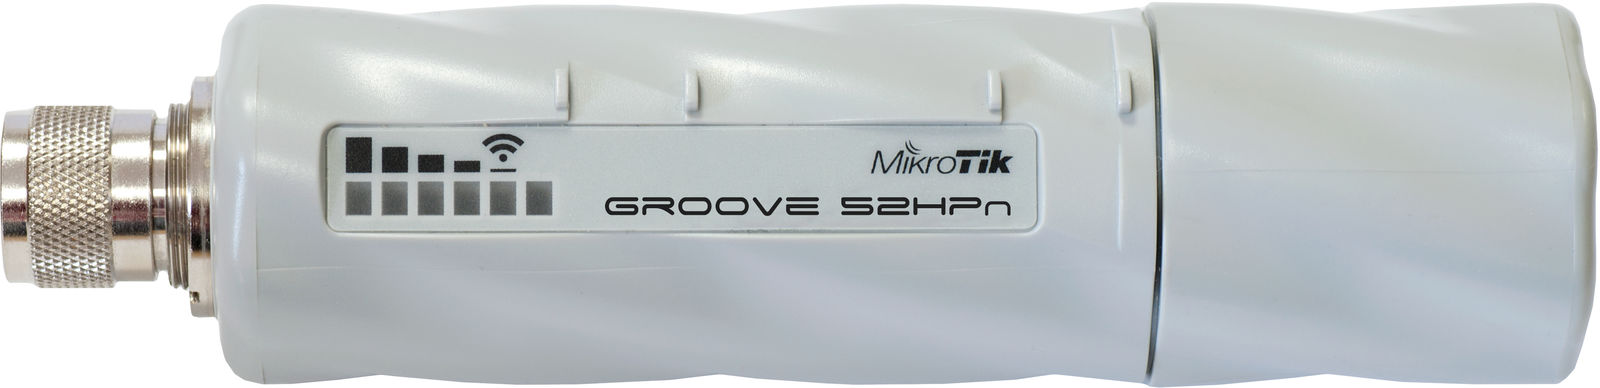 MikroTik RouterBOARD Groove-52HPn with 600MHz Atheros CPU, 64MB RAM, RBGROOVE-52HPN - eet01